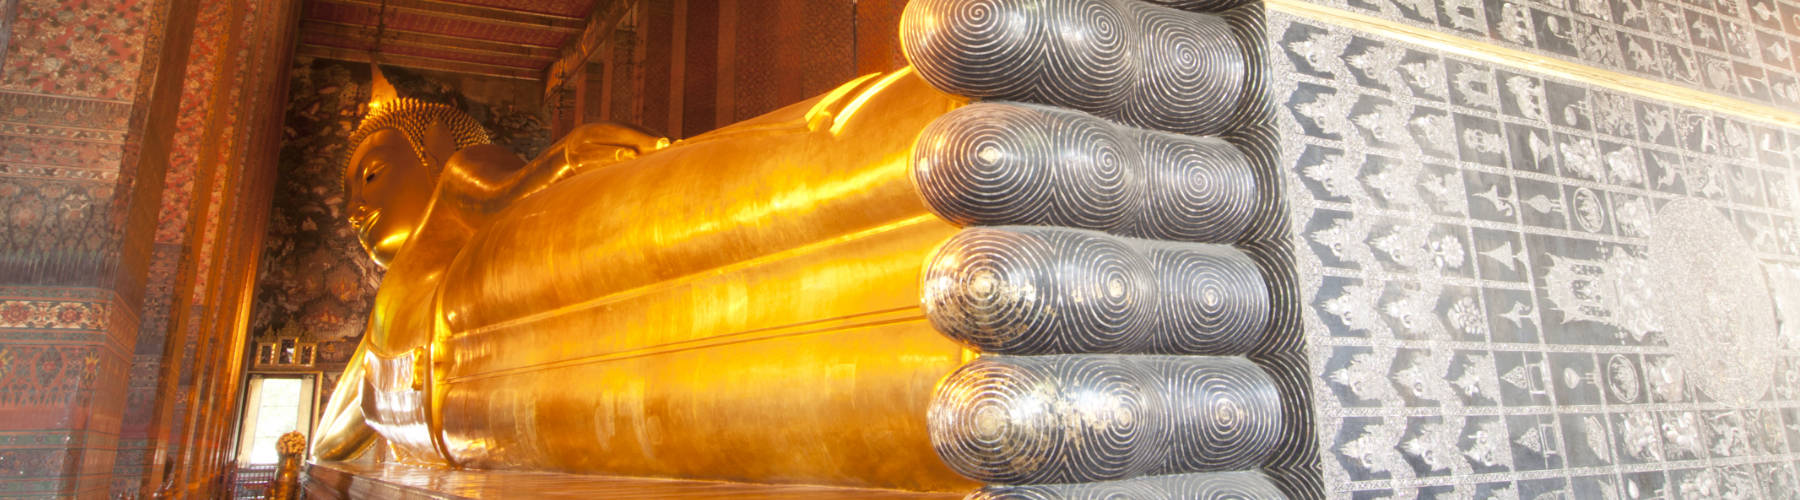 Wat Pho The Reclining Buddha Of Bangkok What Else To